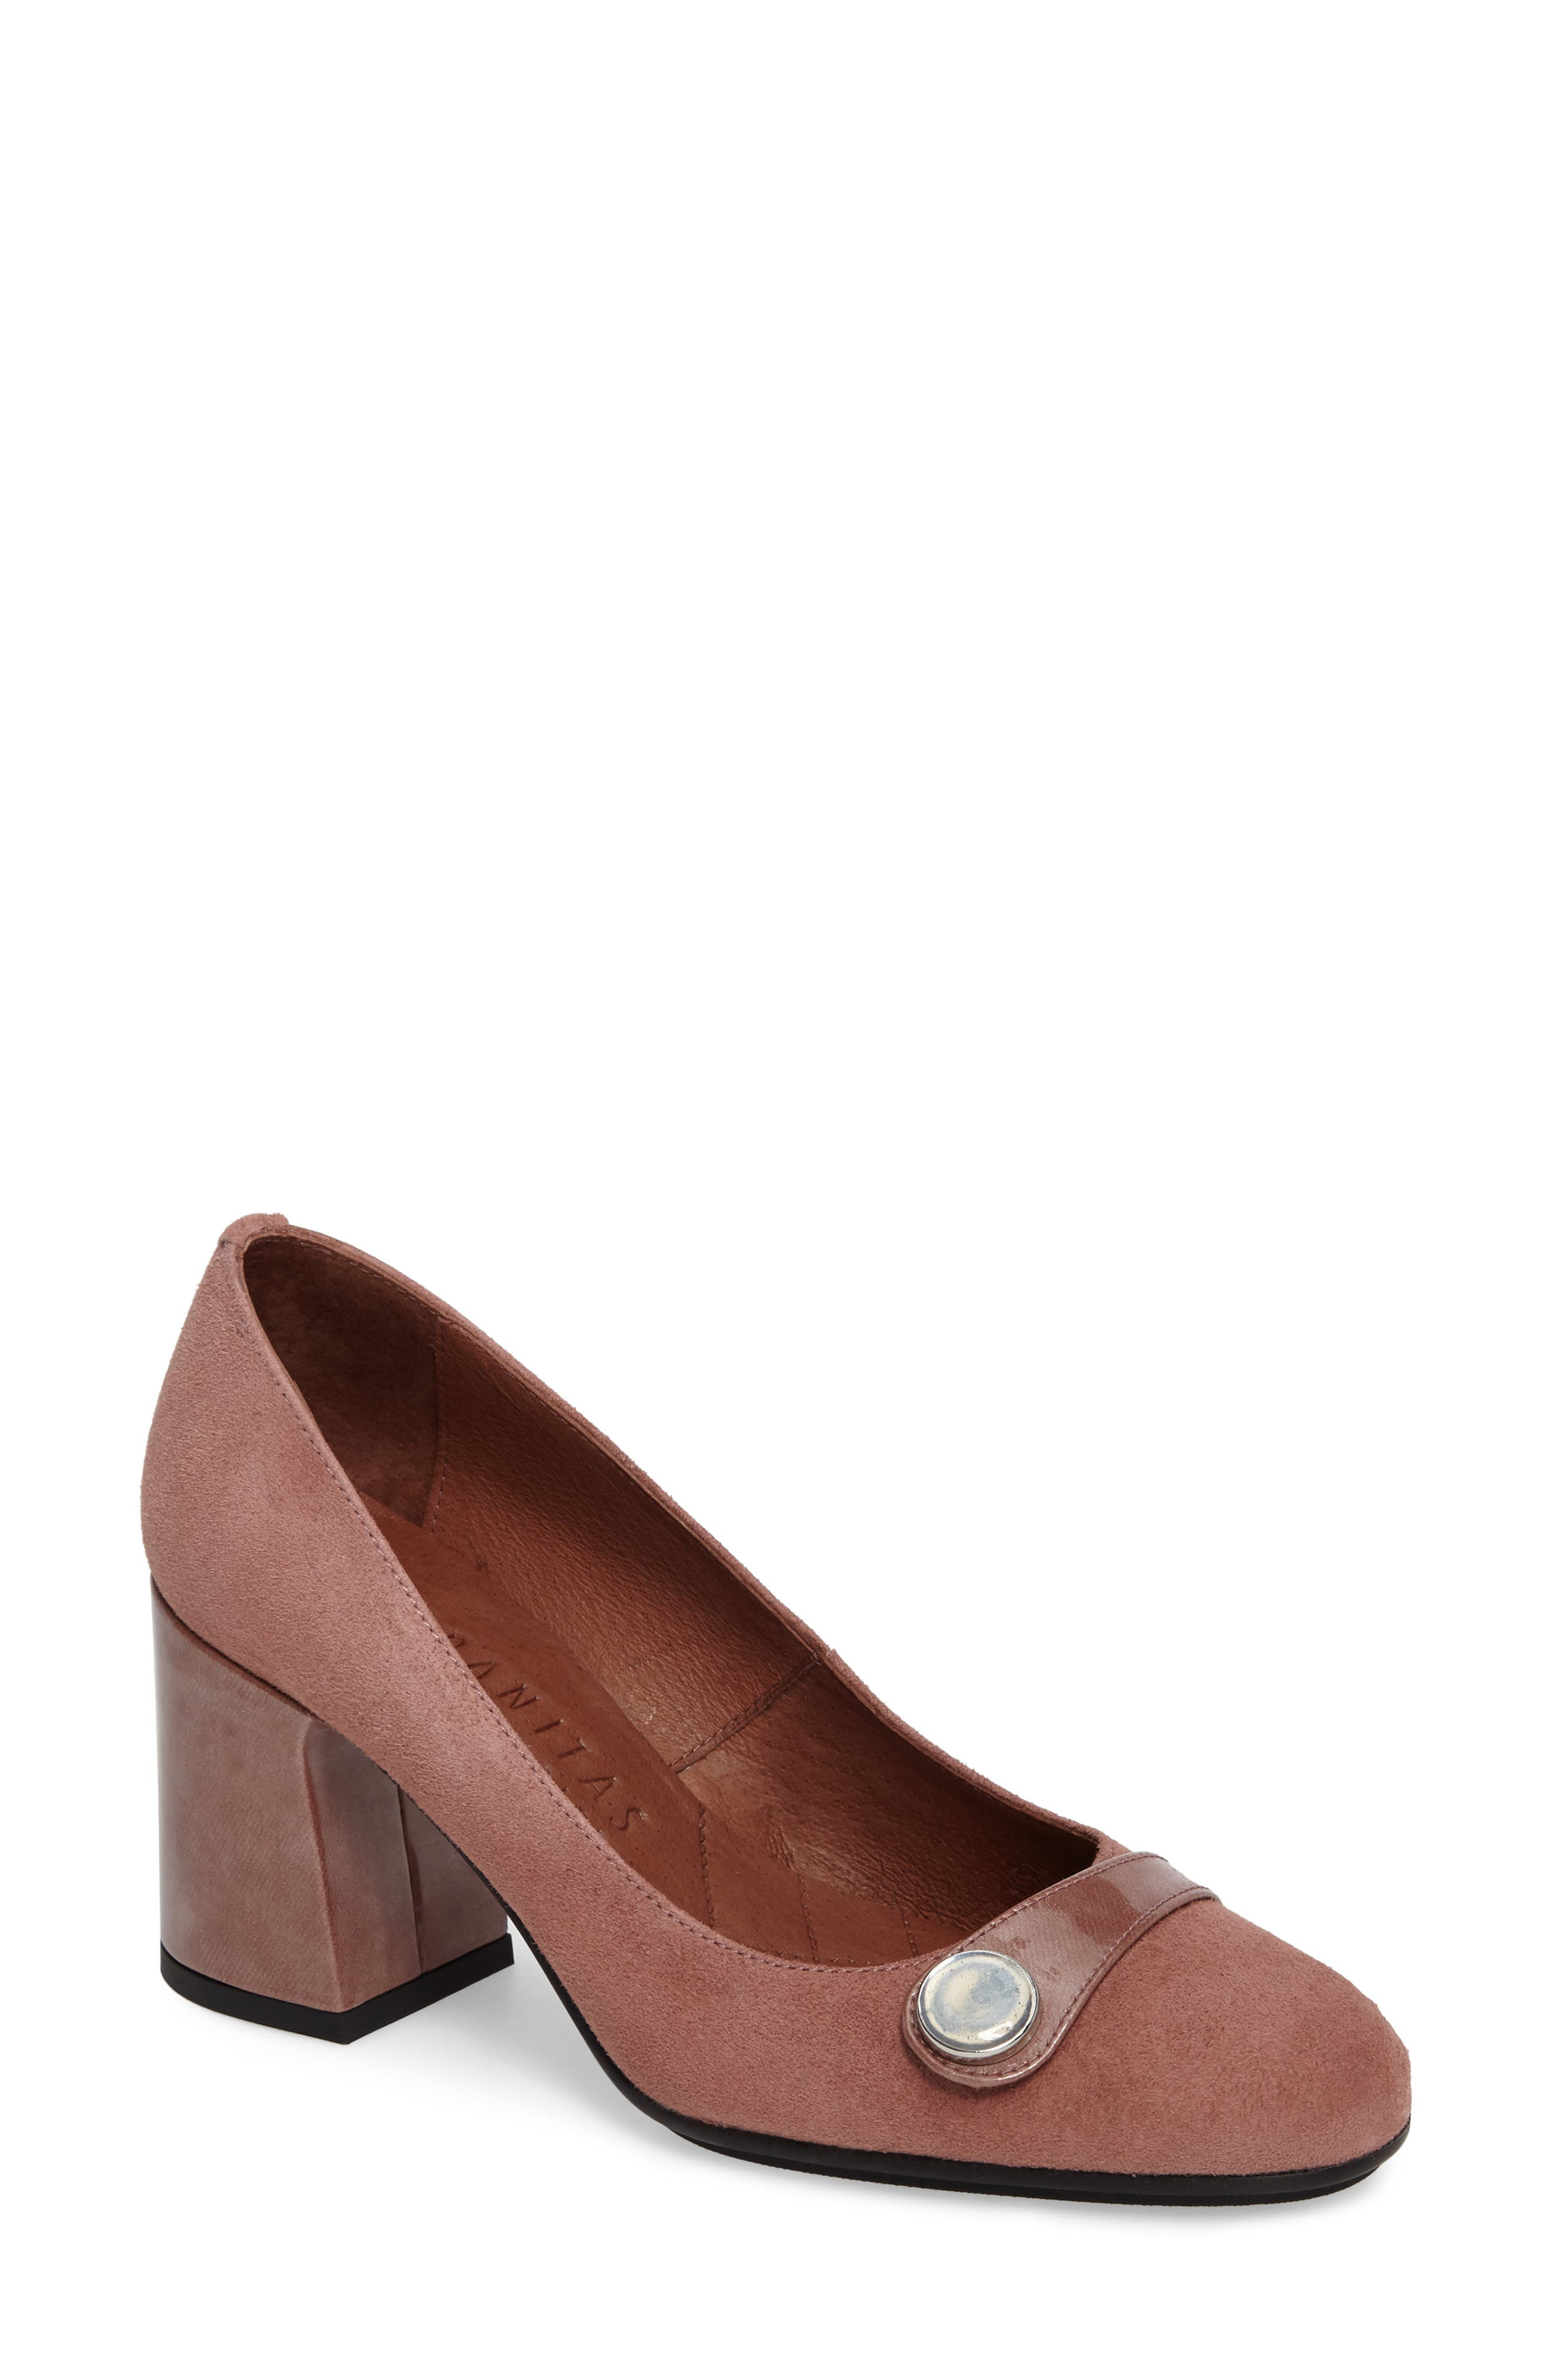 Gretchen Pump,                         Main,                         color, Rose Leather